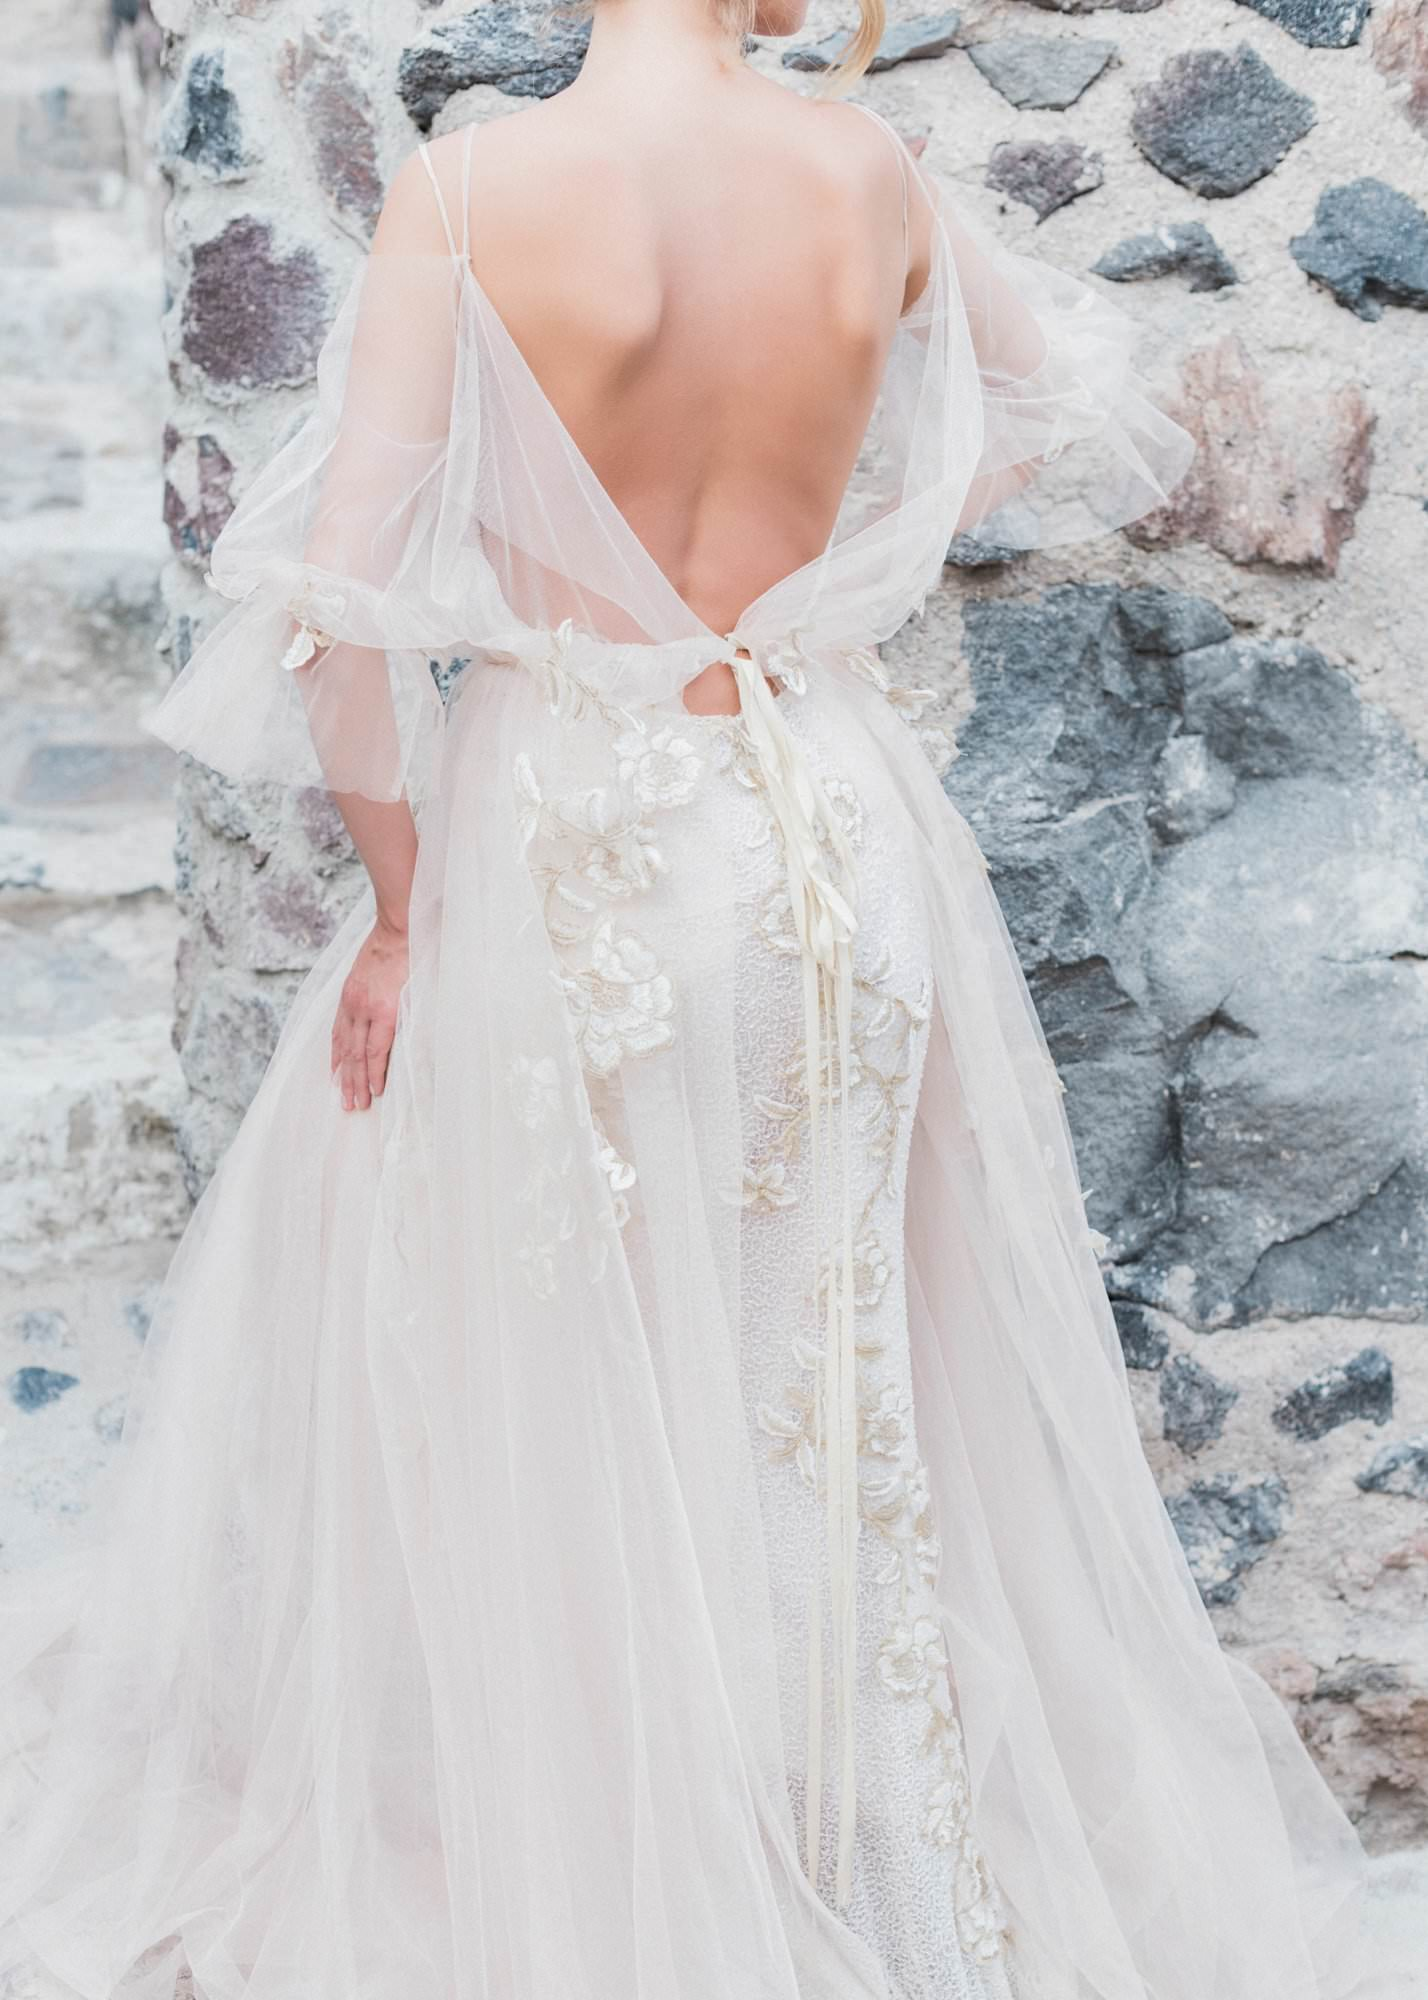 38-bridal-santorini-wedding-photographer-greece-b-v